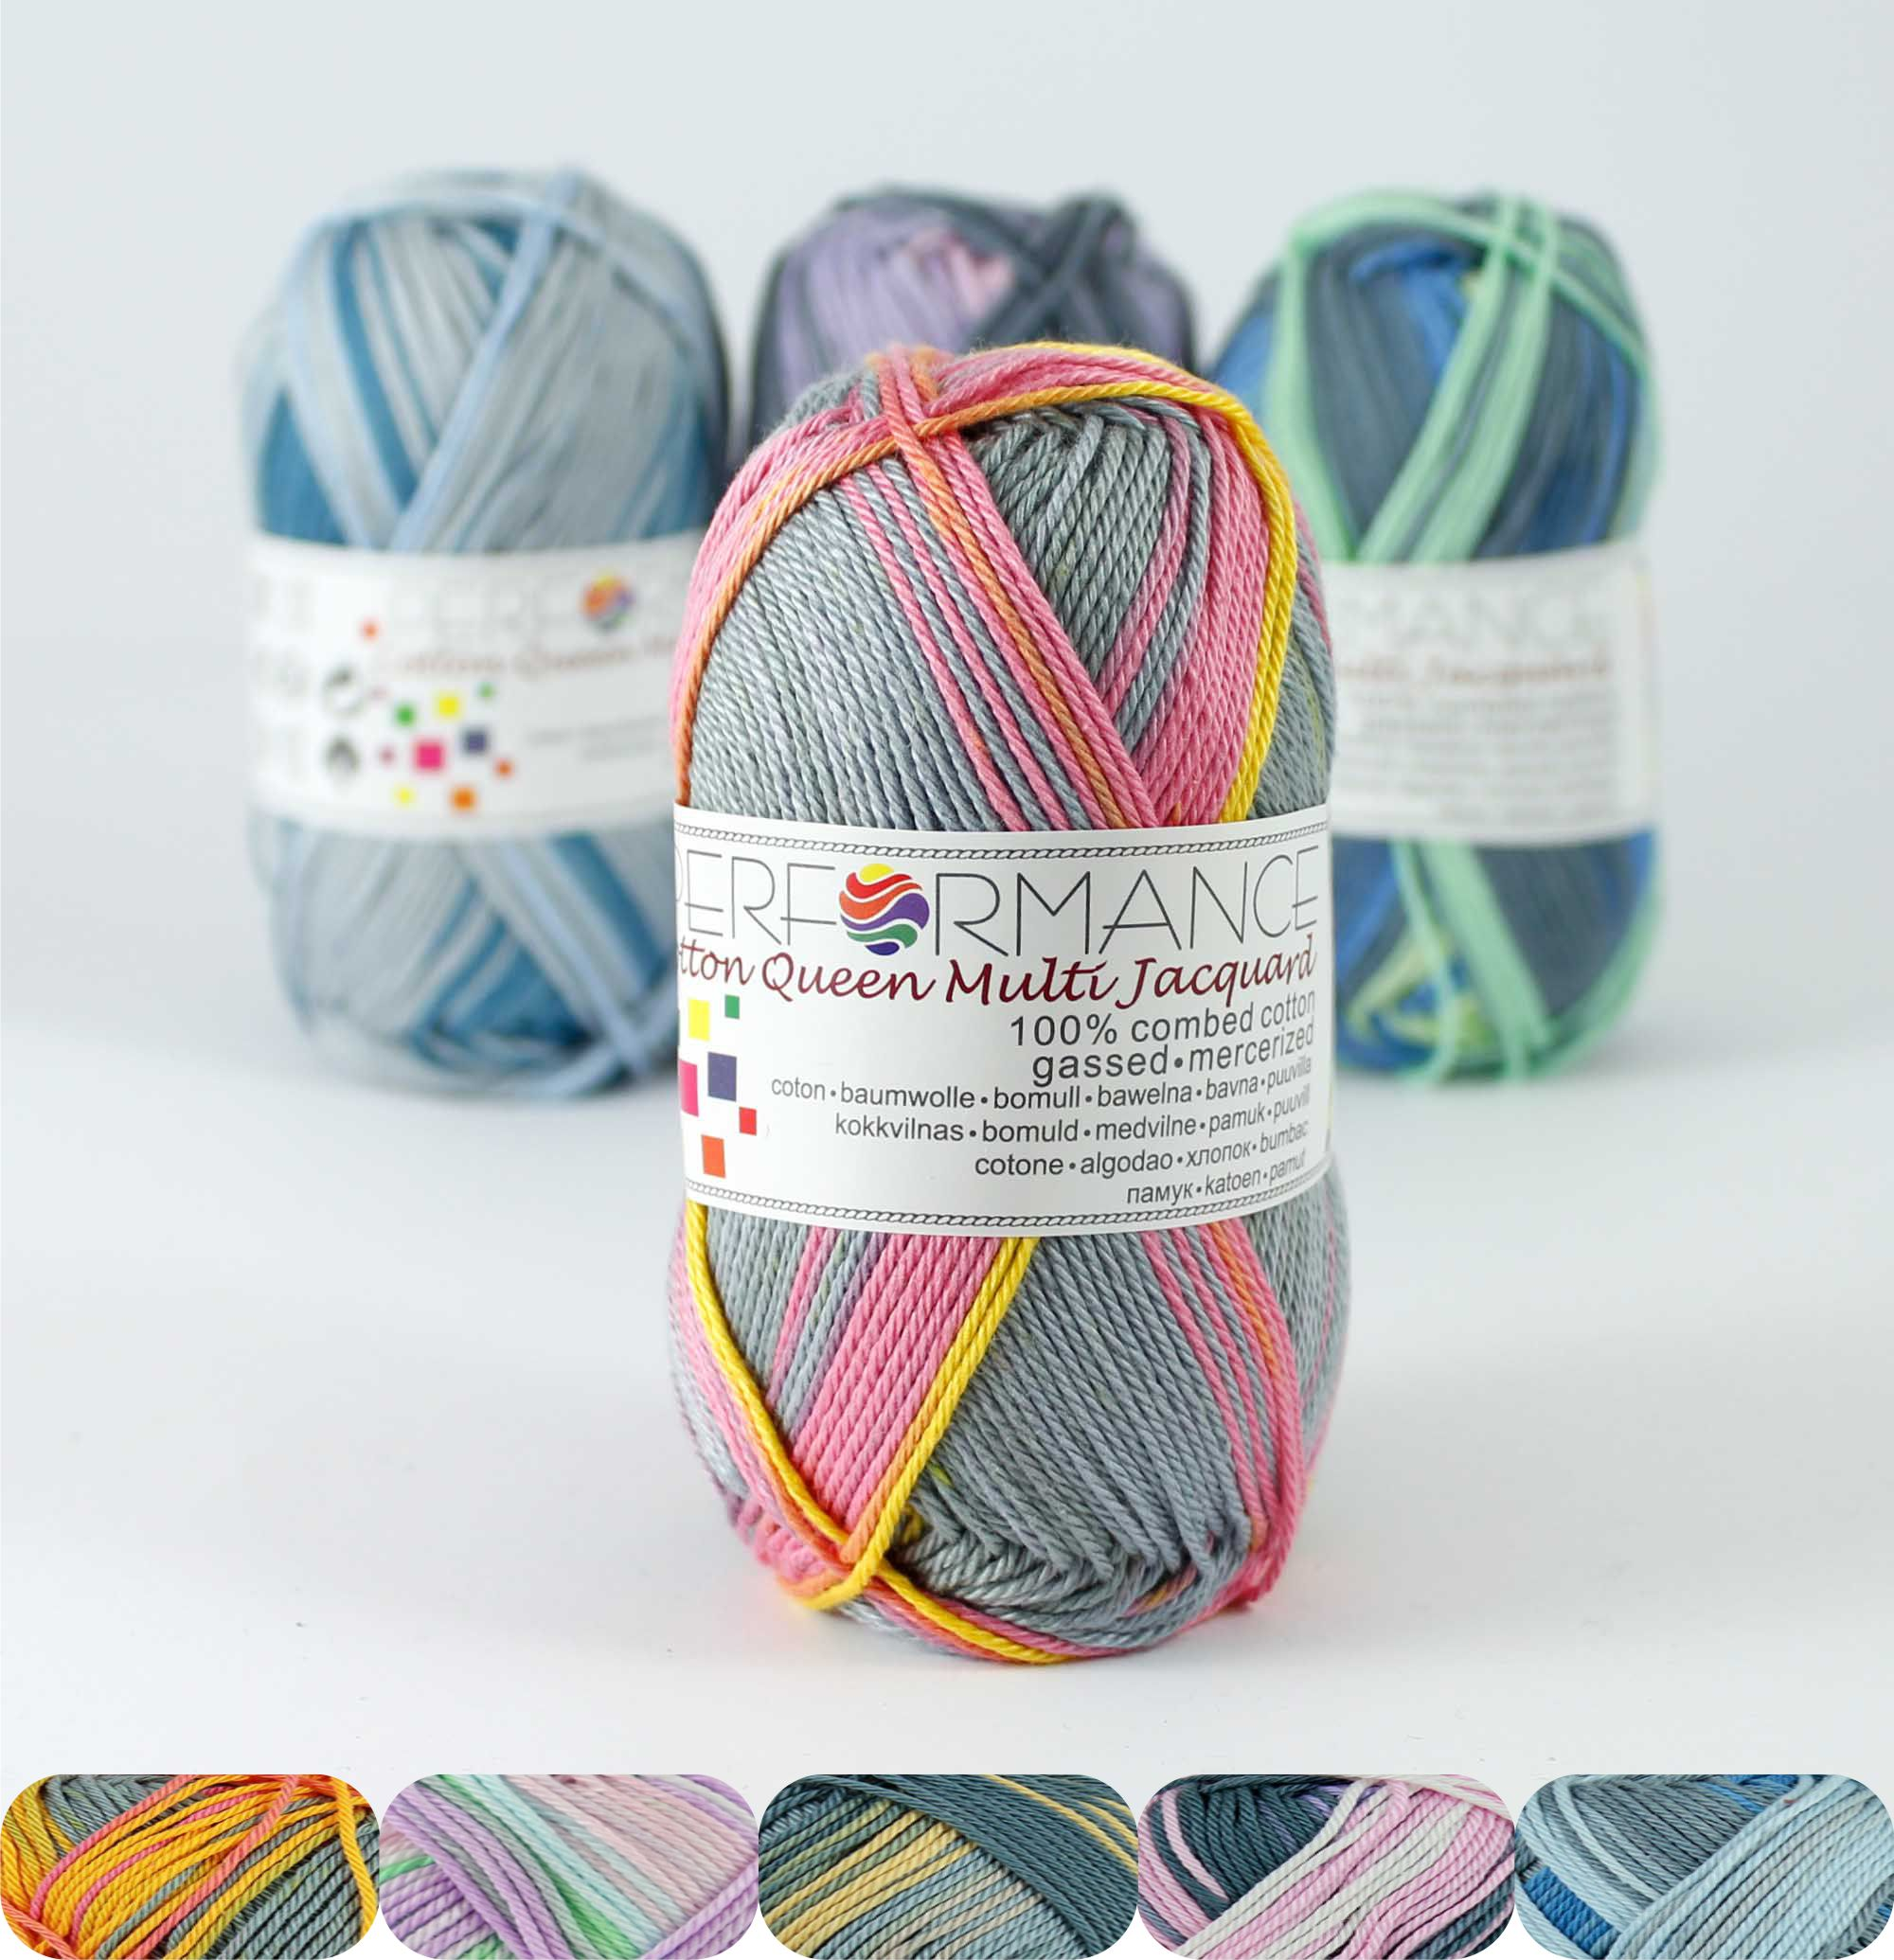 Garn Cotton Queen Multi - 100% Baumwolle, gekämmt, gasiert, merzerisiert - NM 10/4 - 125 m pro 50 g - 10451 Multicolor